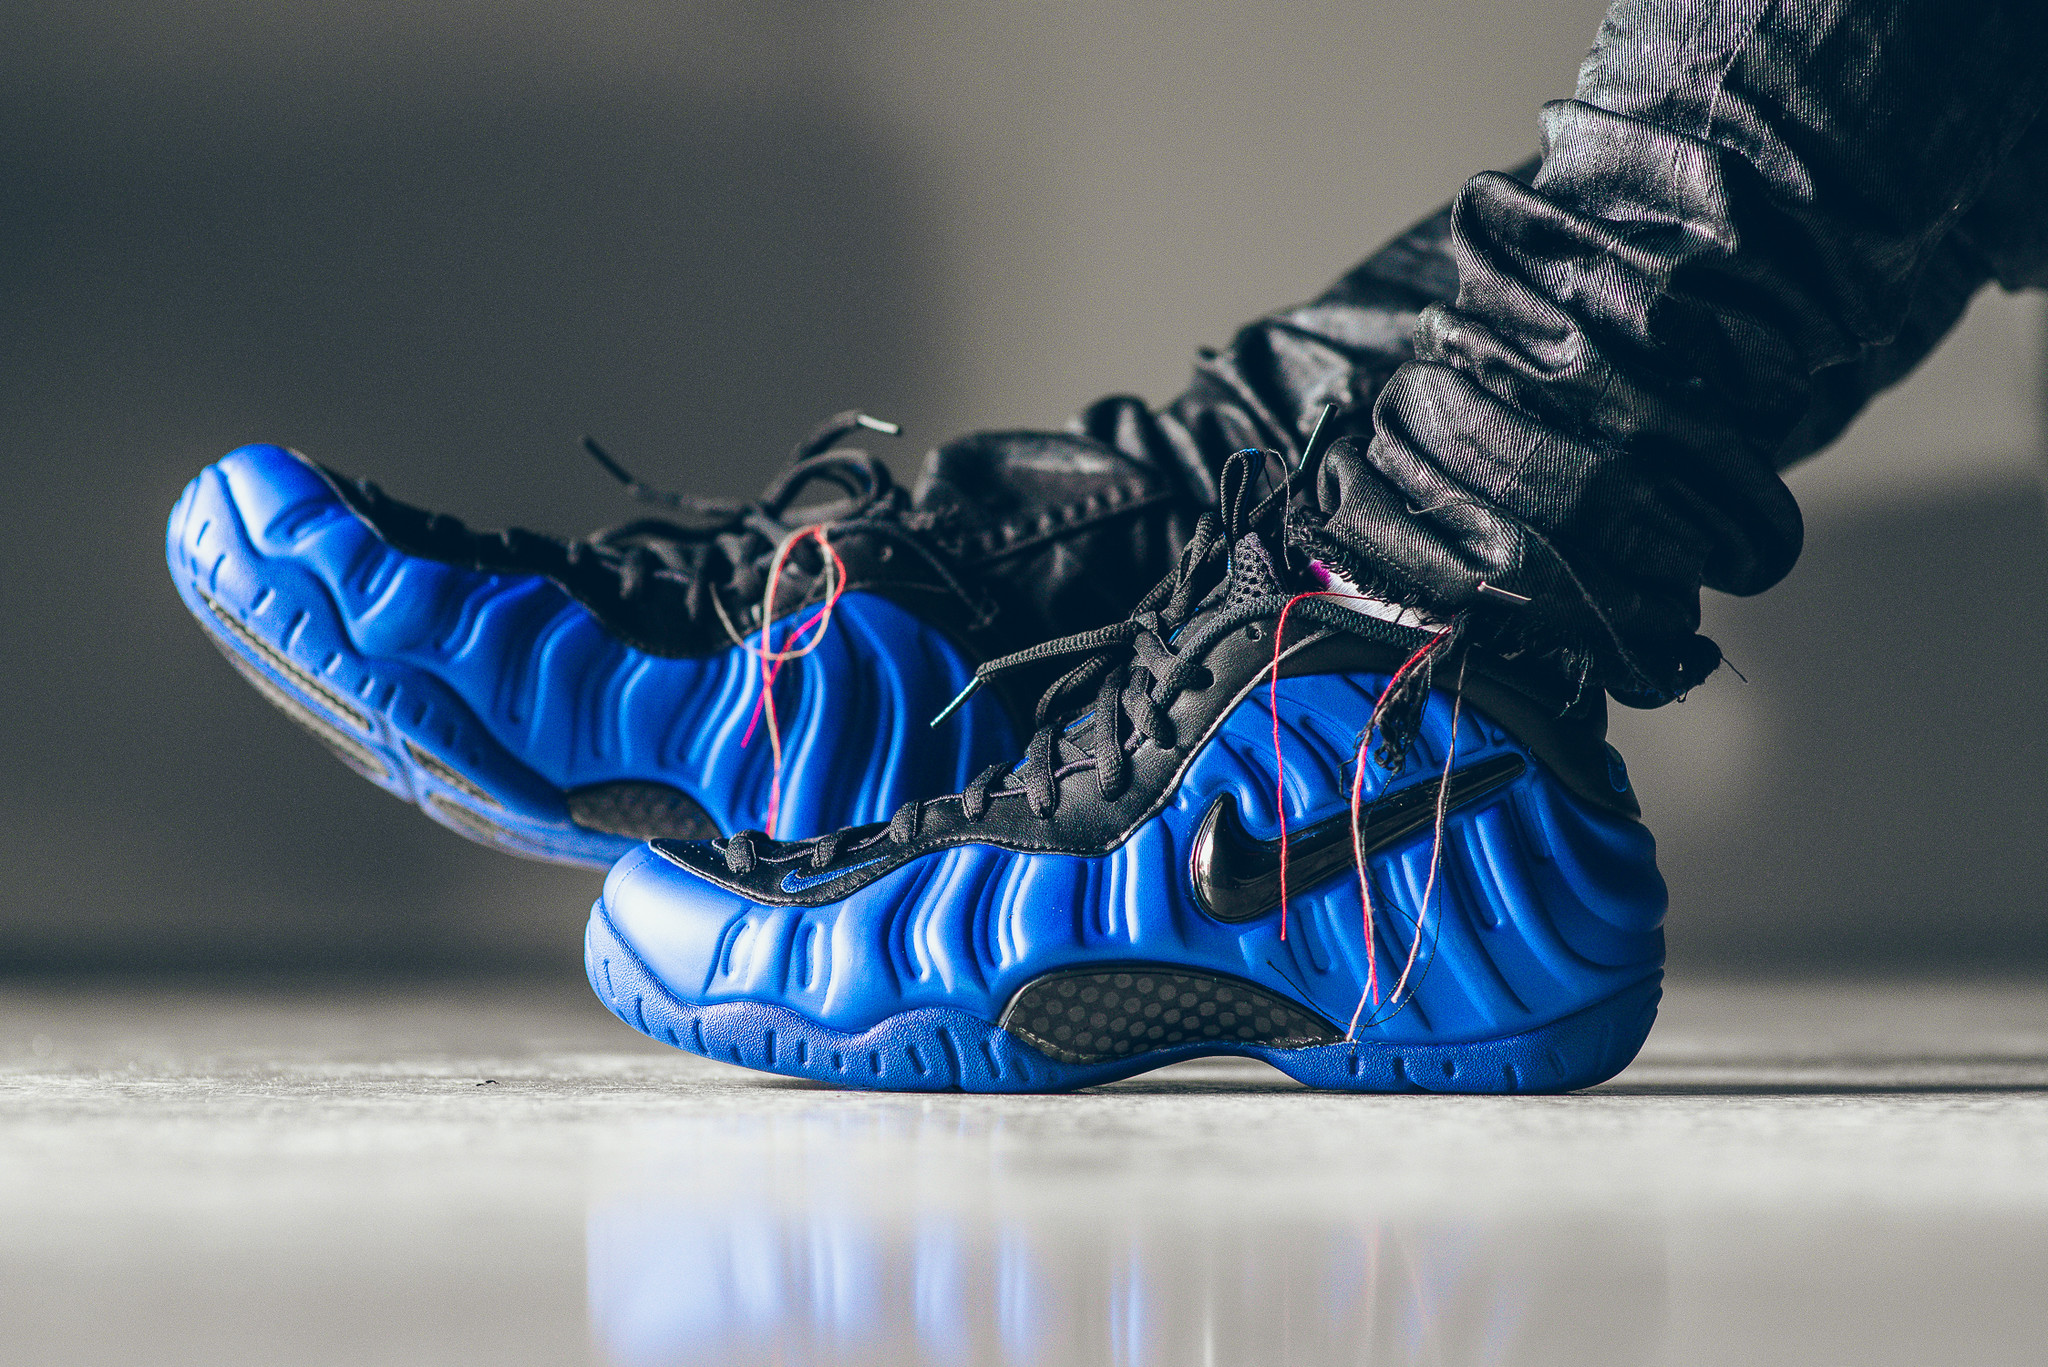 738b6ddf8 Genuine Nike Air Foamposite Pro Electronic Blue Retro Black-Whit ...